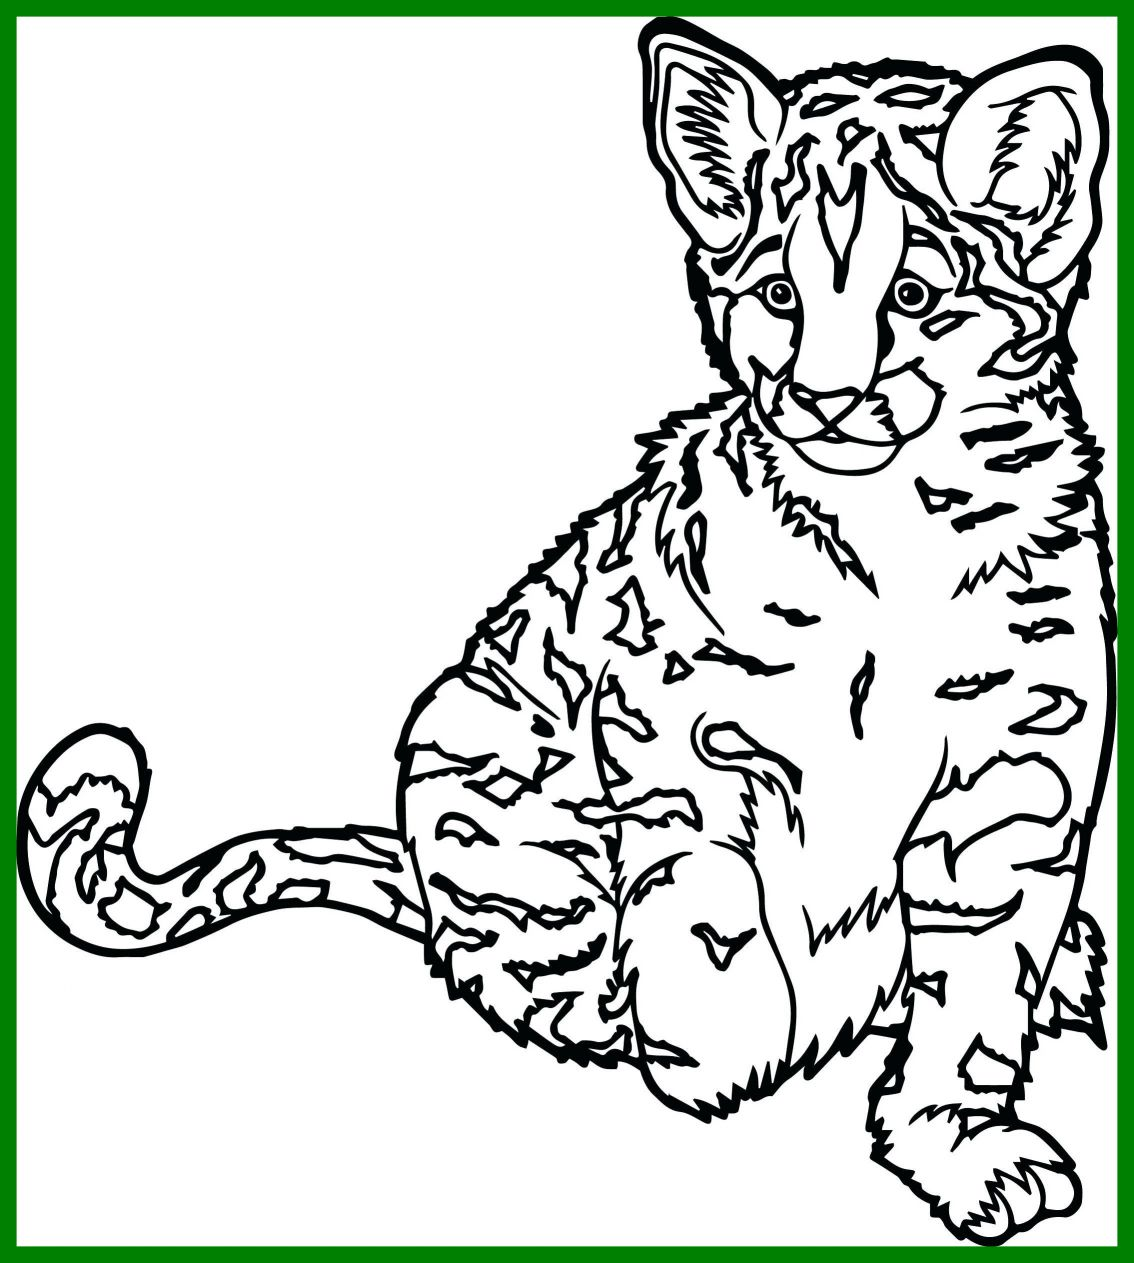 1134x1263 Fascinating New Lynx Coloring Pages Leri Co Picture For Cat